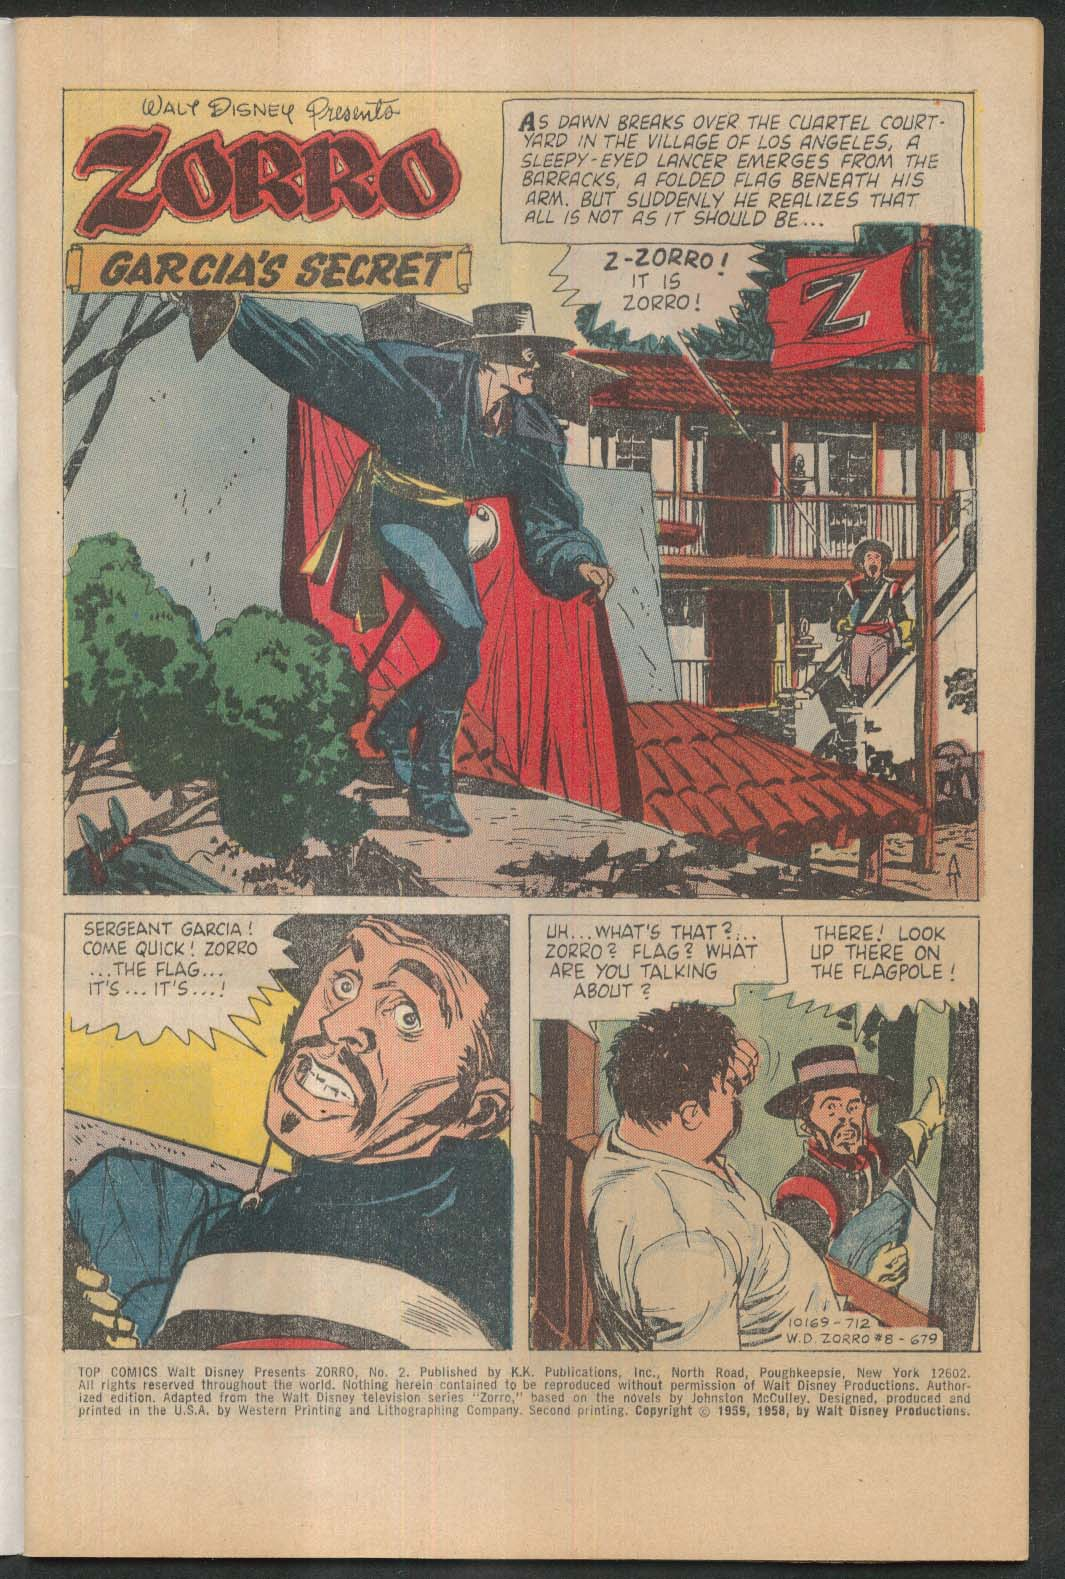 TOP COMICS Walt Disney presents ZORRO #2 comic book 1959